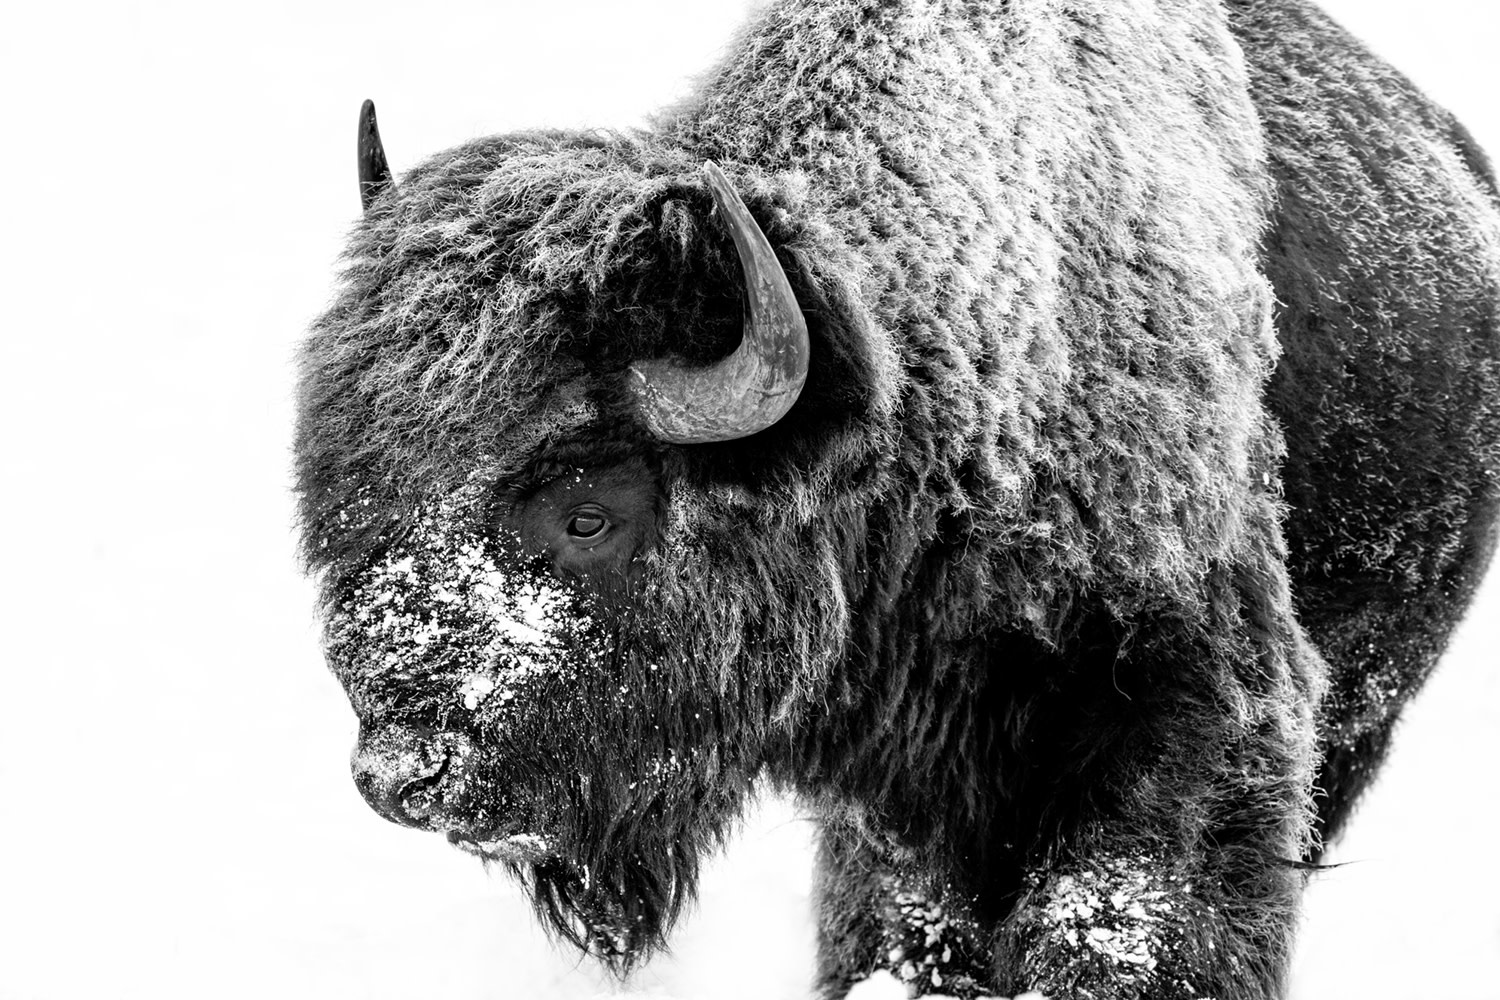 Stoic Bison II